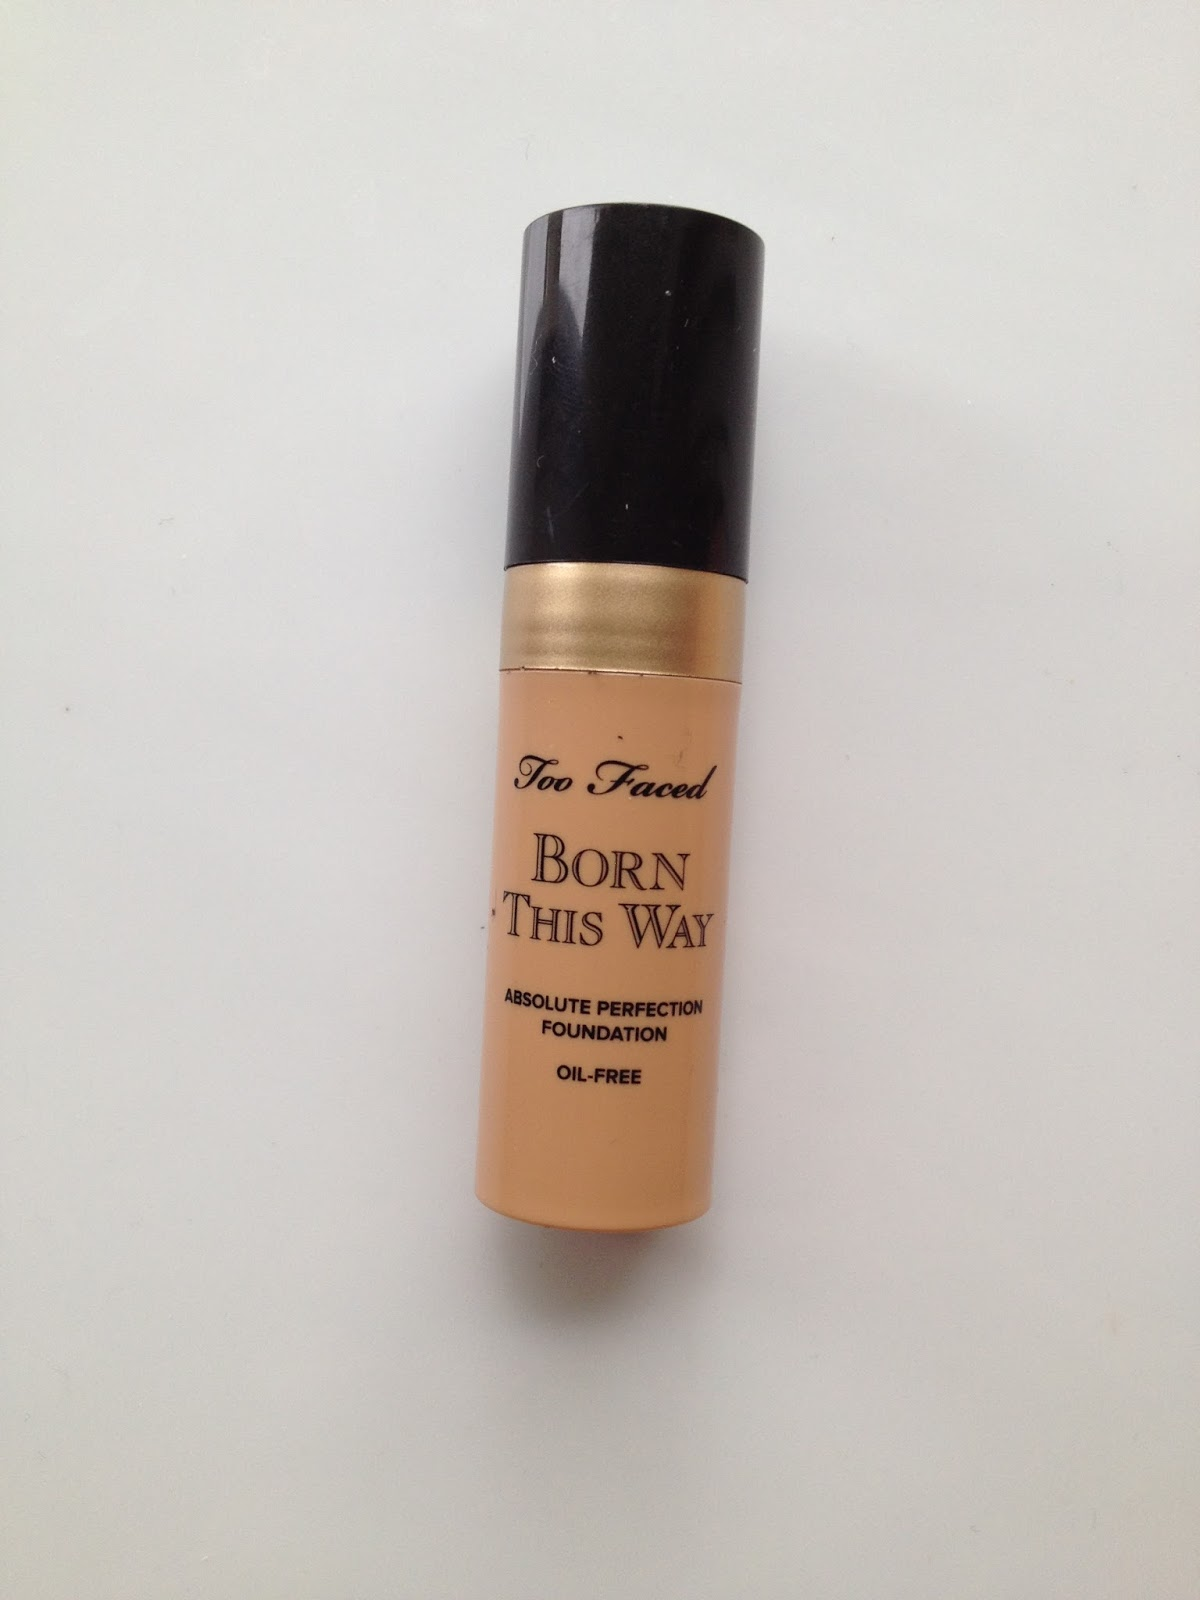 Shannon Goes Shopping: Too Faced Born This Way The Review